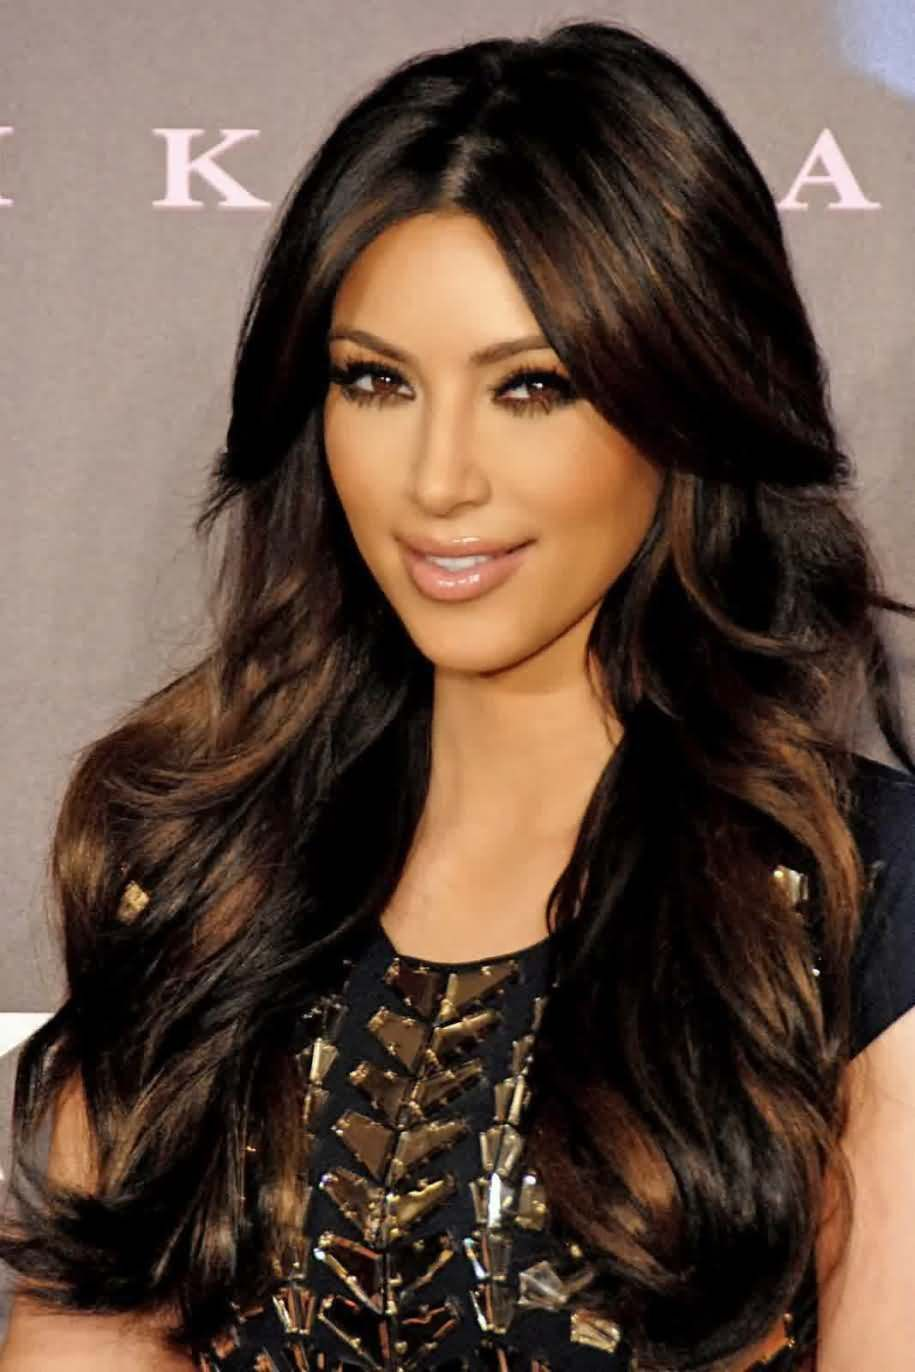 Hairstyles 2016 dark hair - Kim Kardashian Hairstyle Two Tone Look Premier Charming Long Curly Synthetic Hair Lace Front Wig About 24 Inches